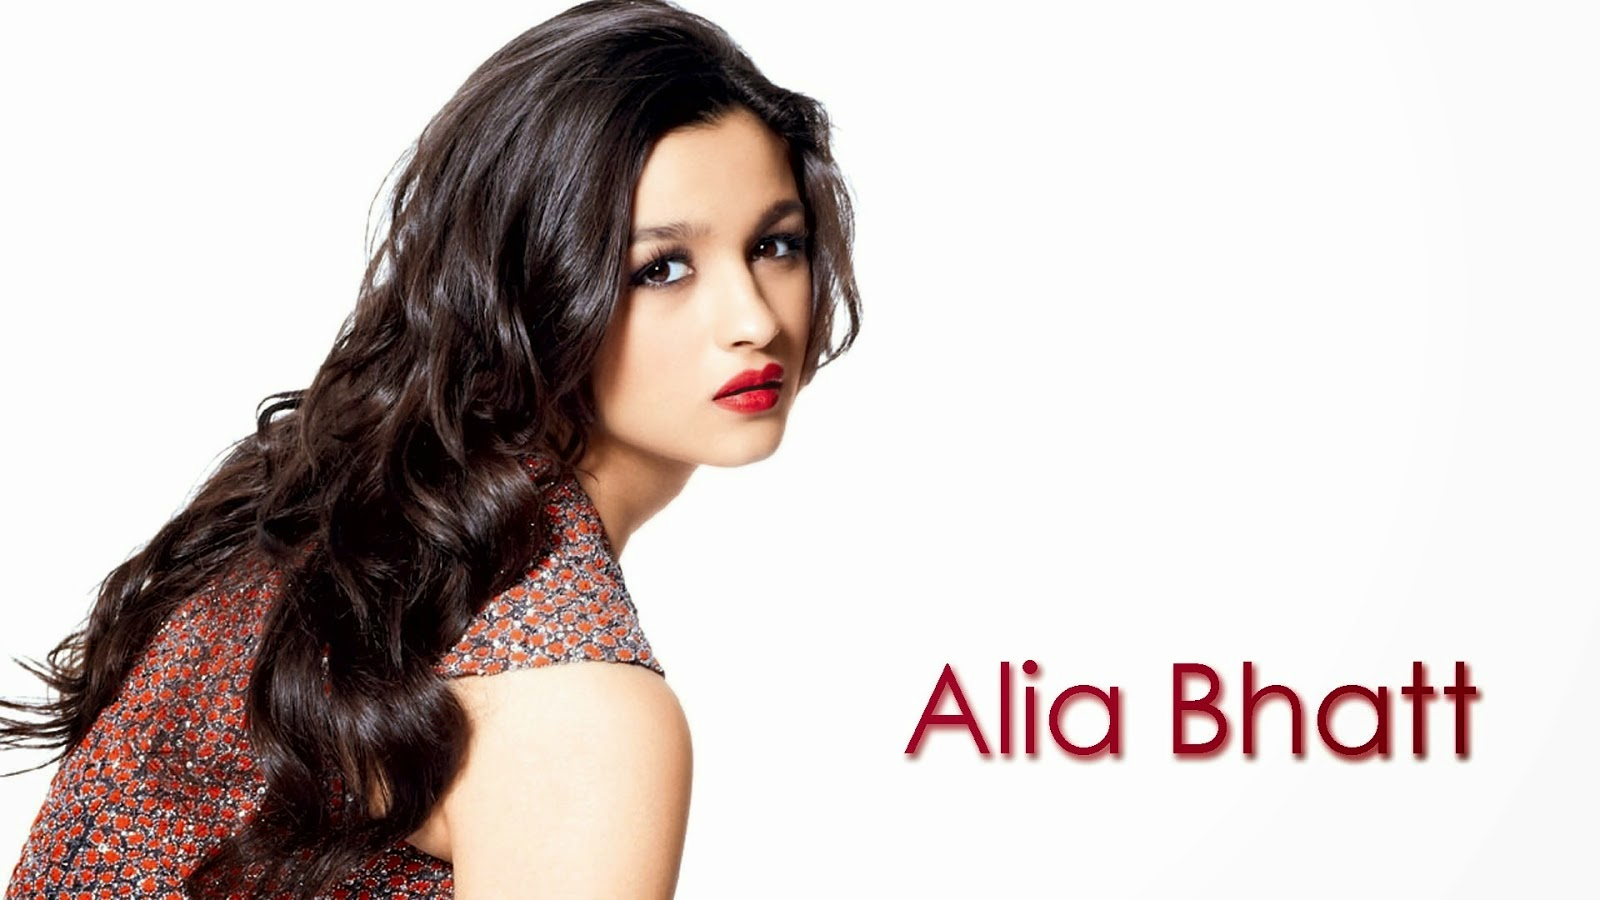 Alia Bhat Latest Wallpaper: Global Pictures Gallery: Alia Bhatt Full HD Wallpapers